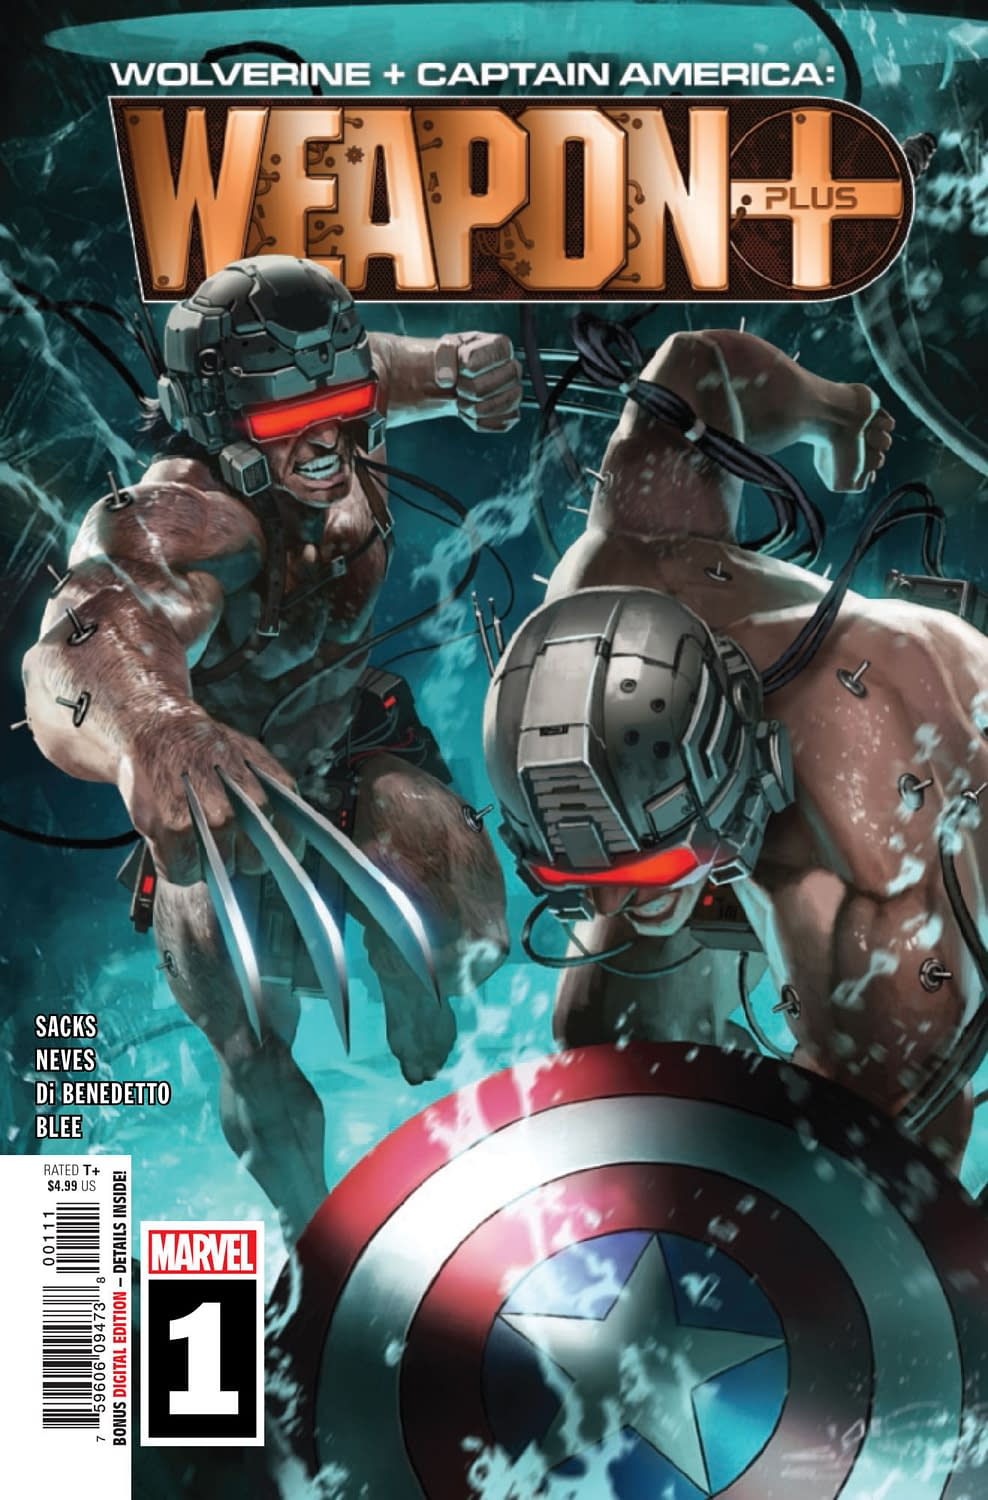 Weapon Plus #1: The A on His Head Doesn't Stand for France [Preview]